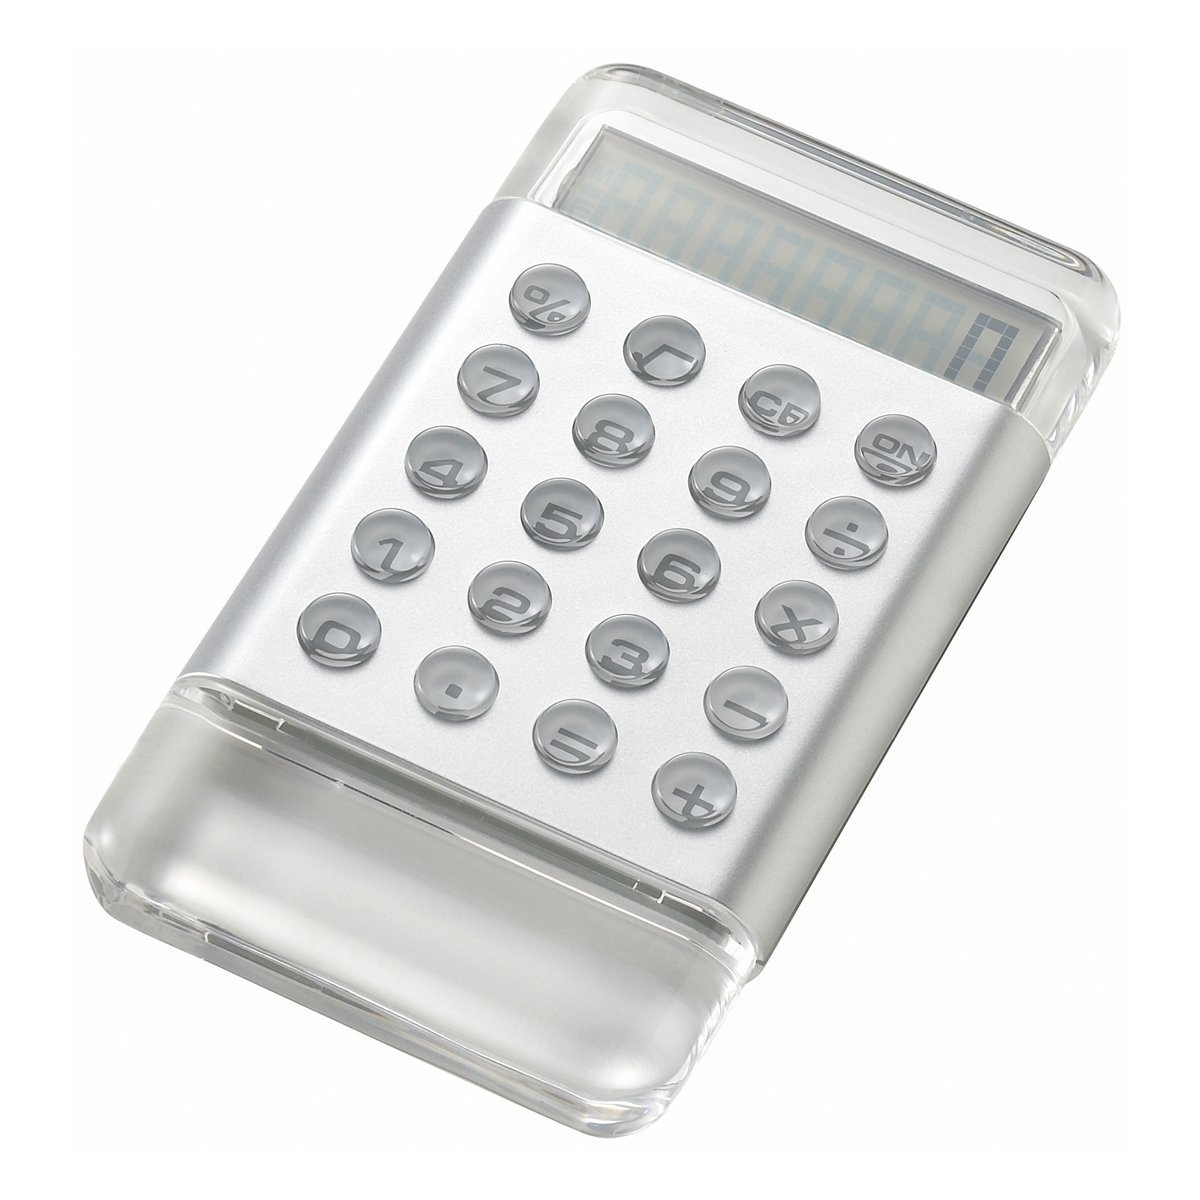 Color Acrylic Calculator Silver LDC011-SY 4190122 (japan import)